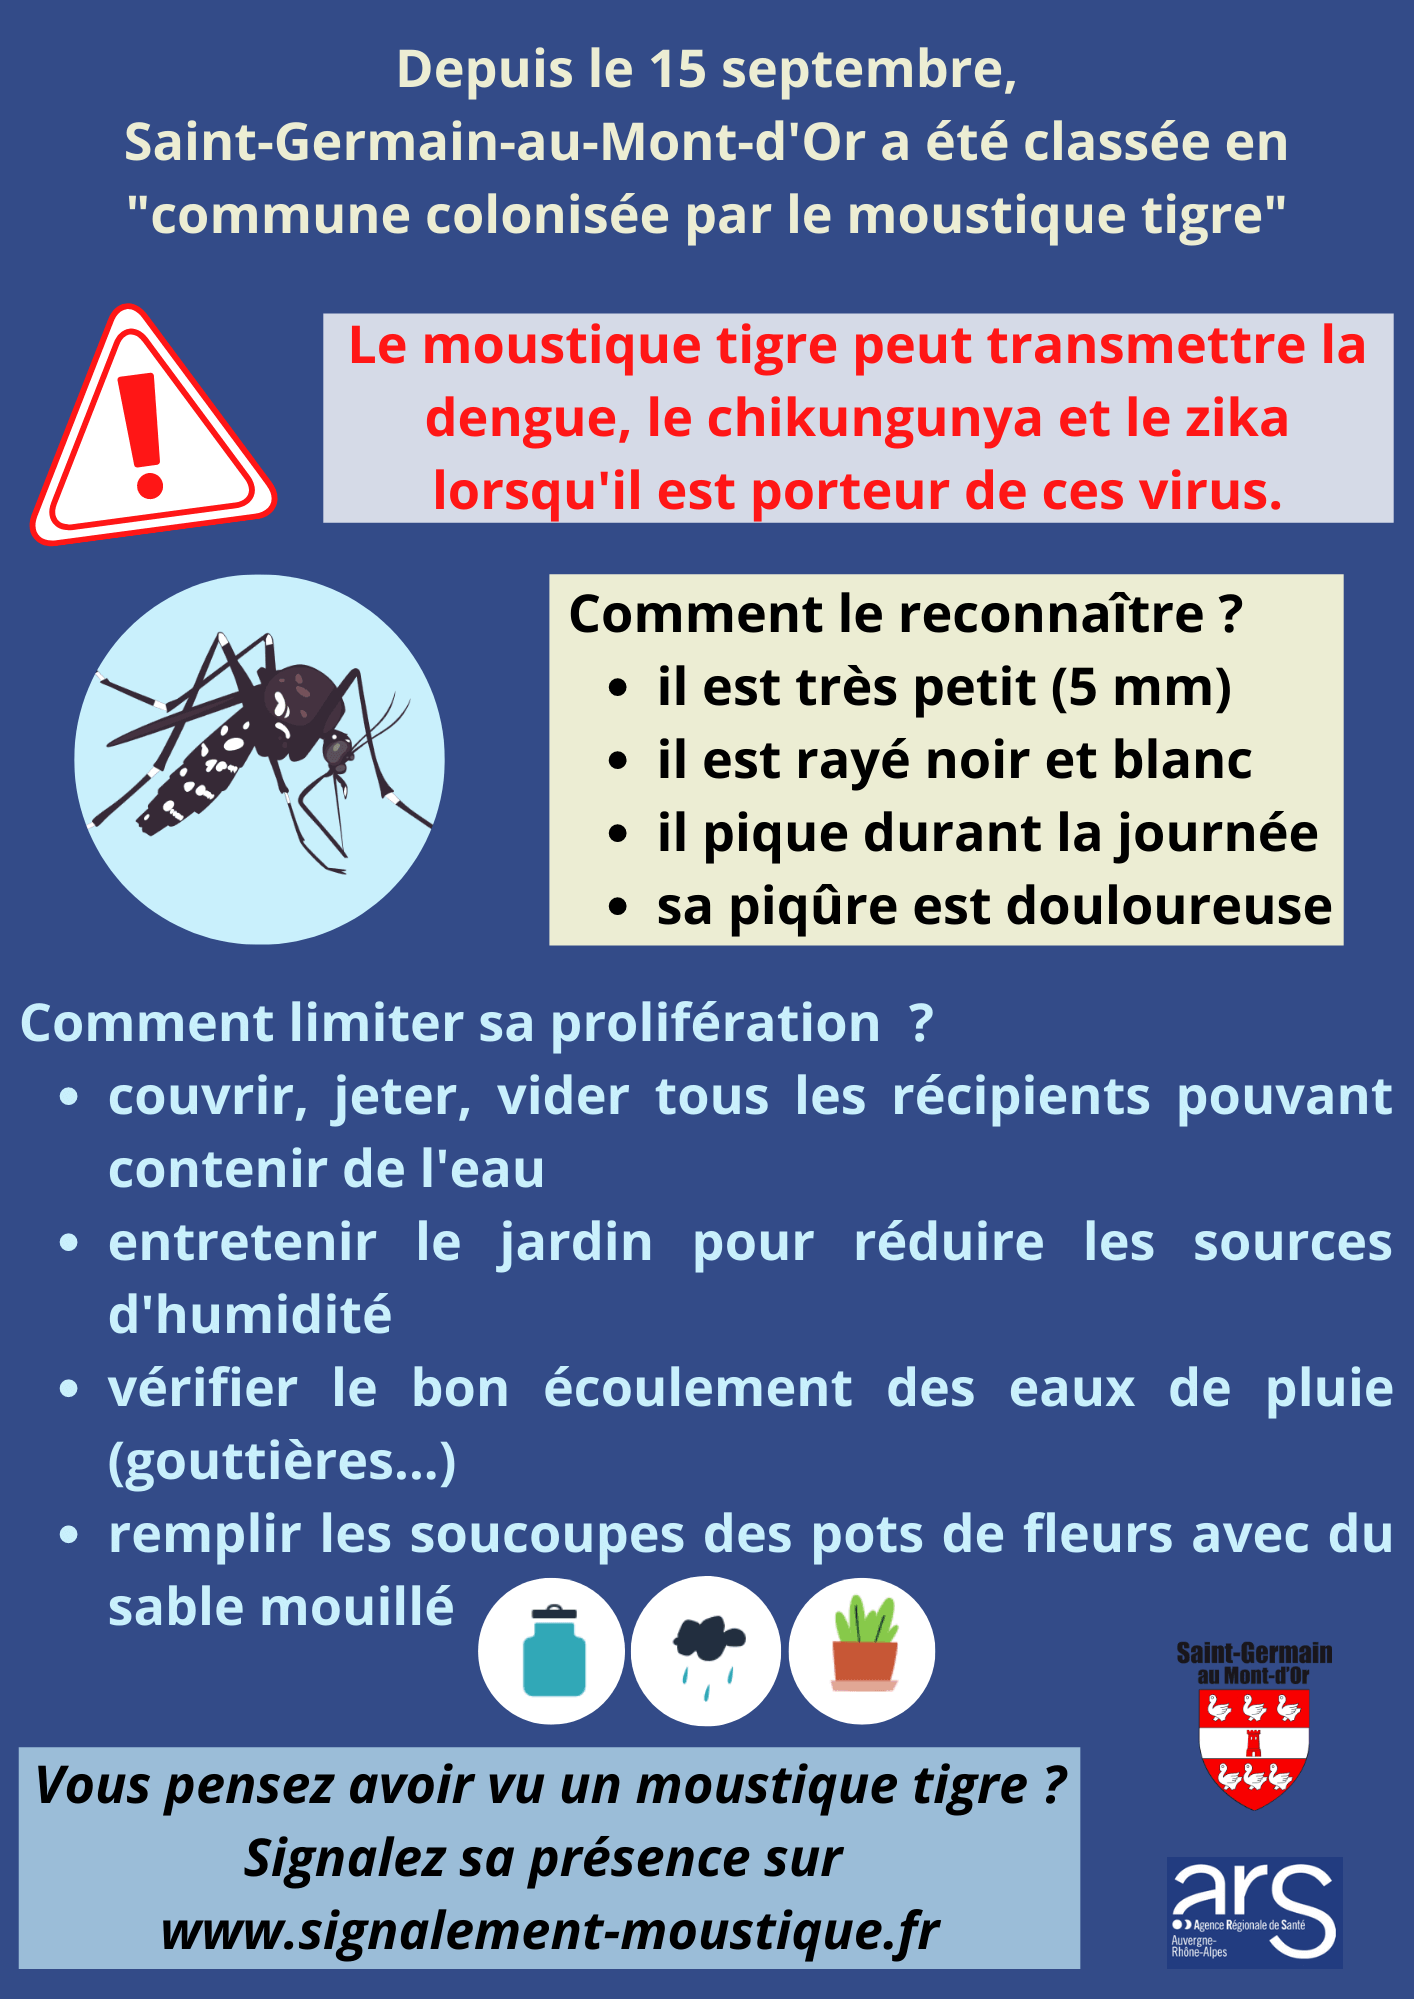 Informations moustique tigre